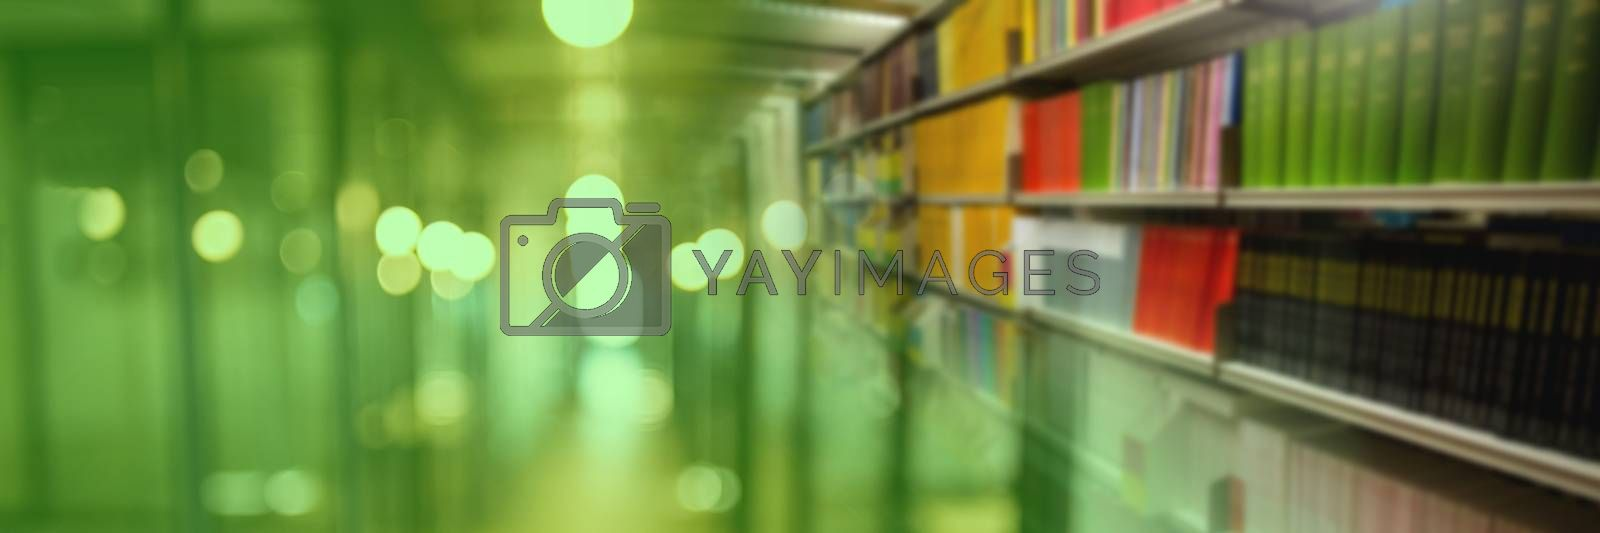 Digital composite of Education library with colorful green transition